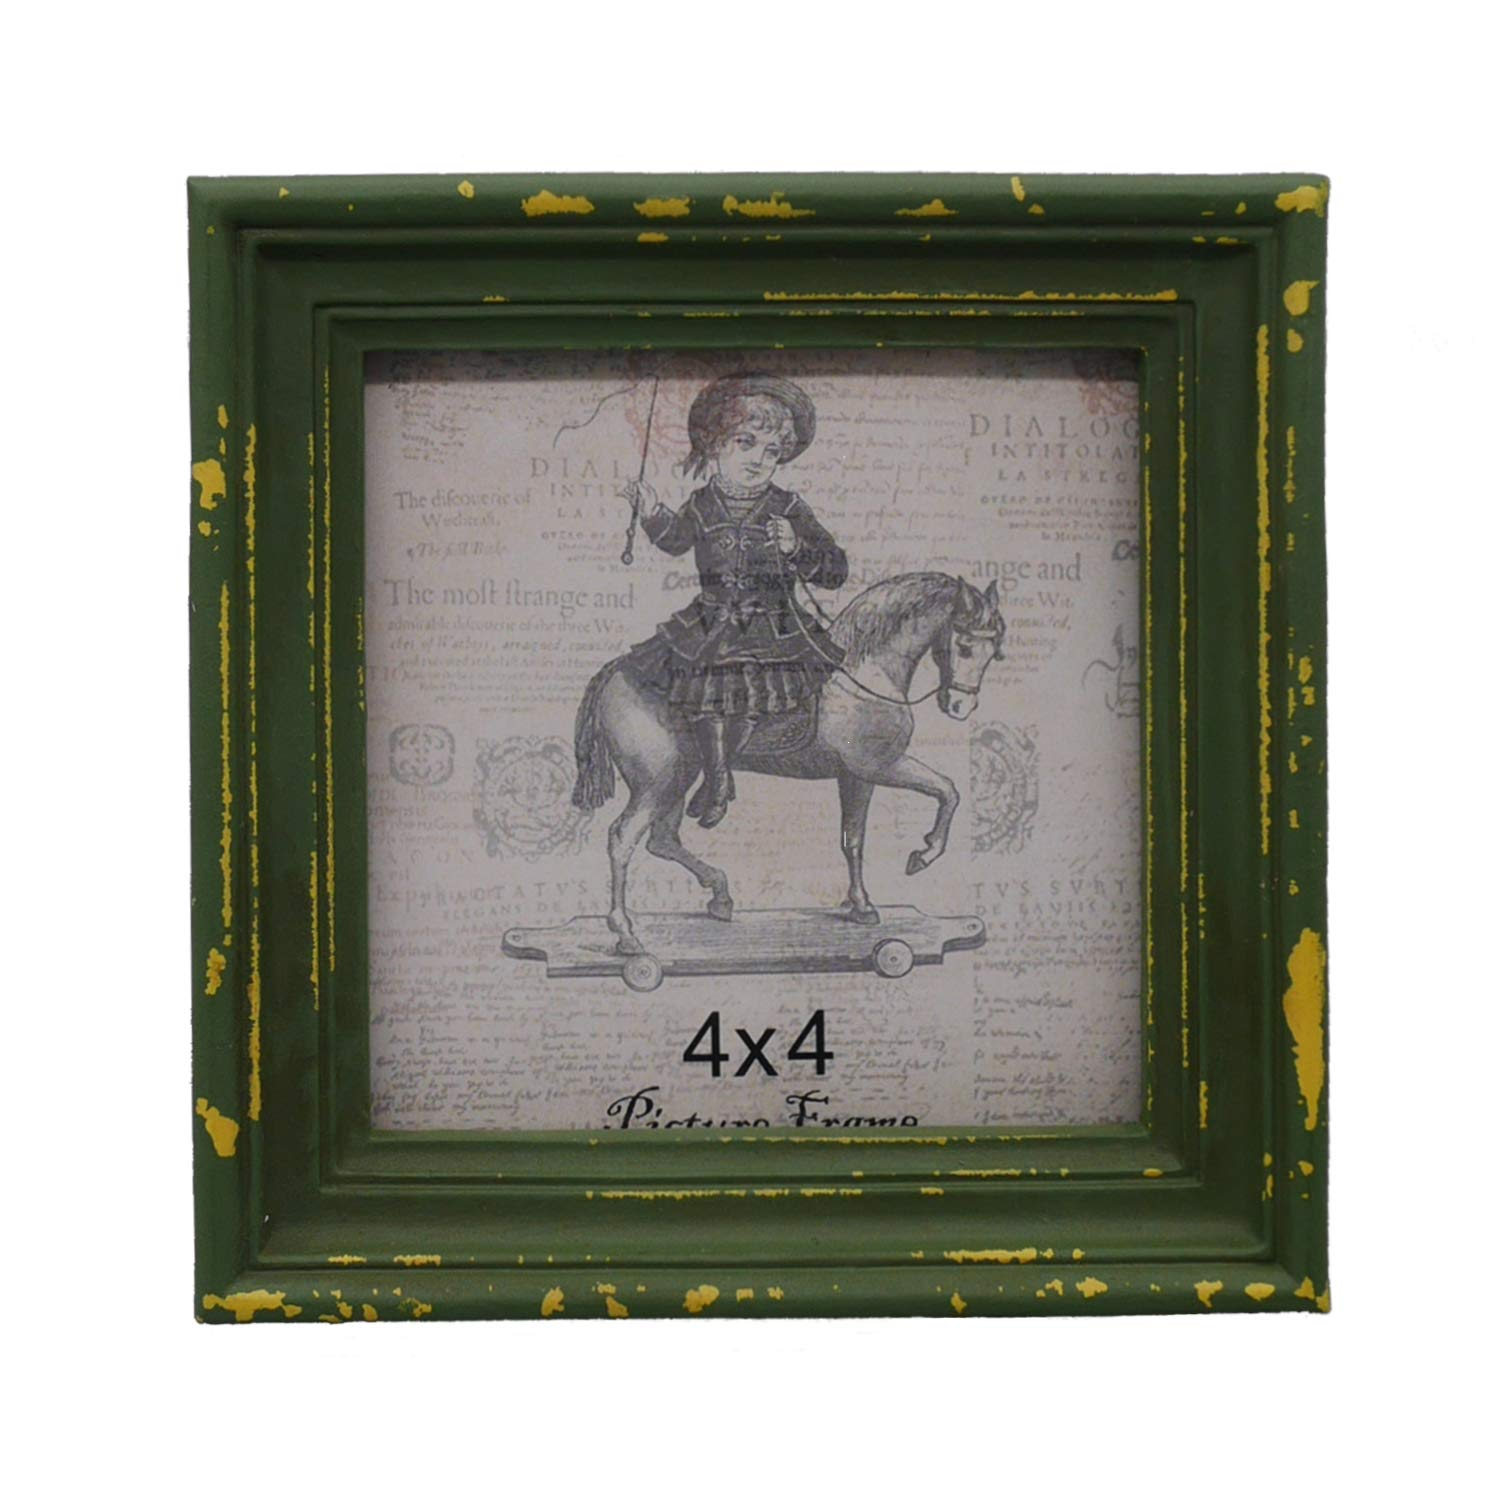 Simon's Shop 4x4 Picture Frame Shabby Chic Picture Frames 4x4 Square, Distressed Moss Green by Simon's Shop